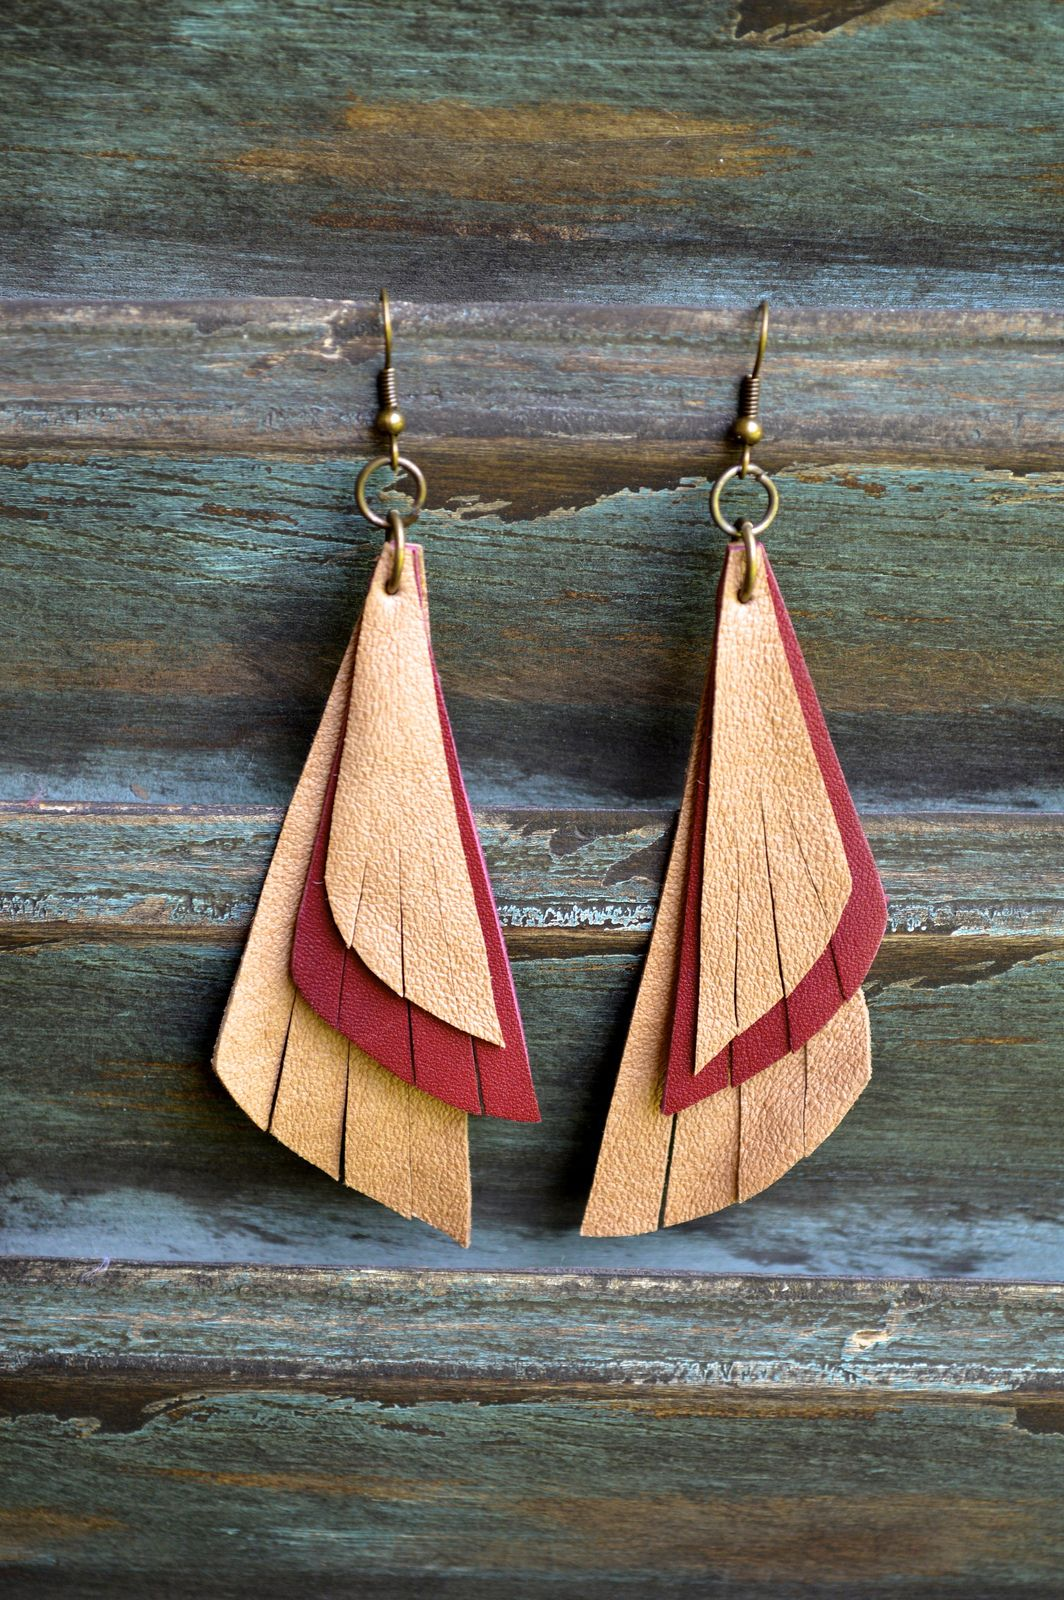 Handmade Leather Earrings from Thailand #126 $16